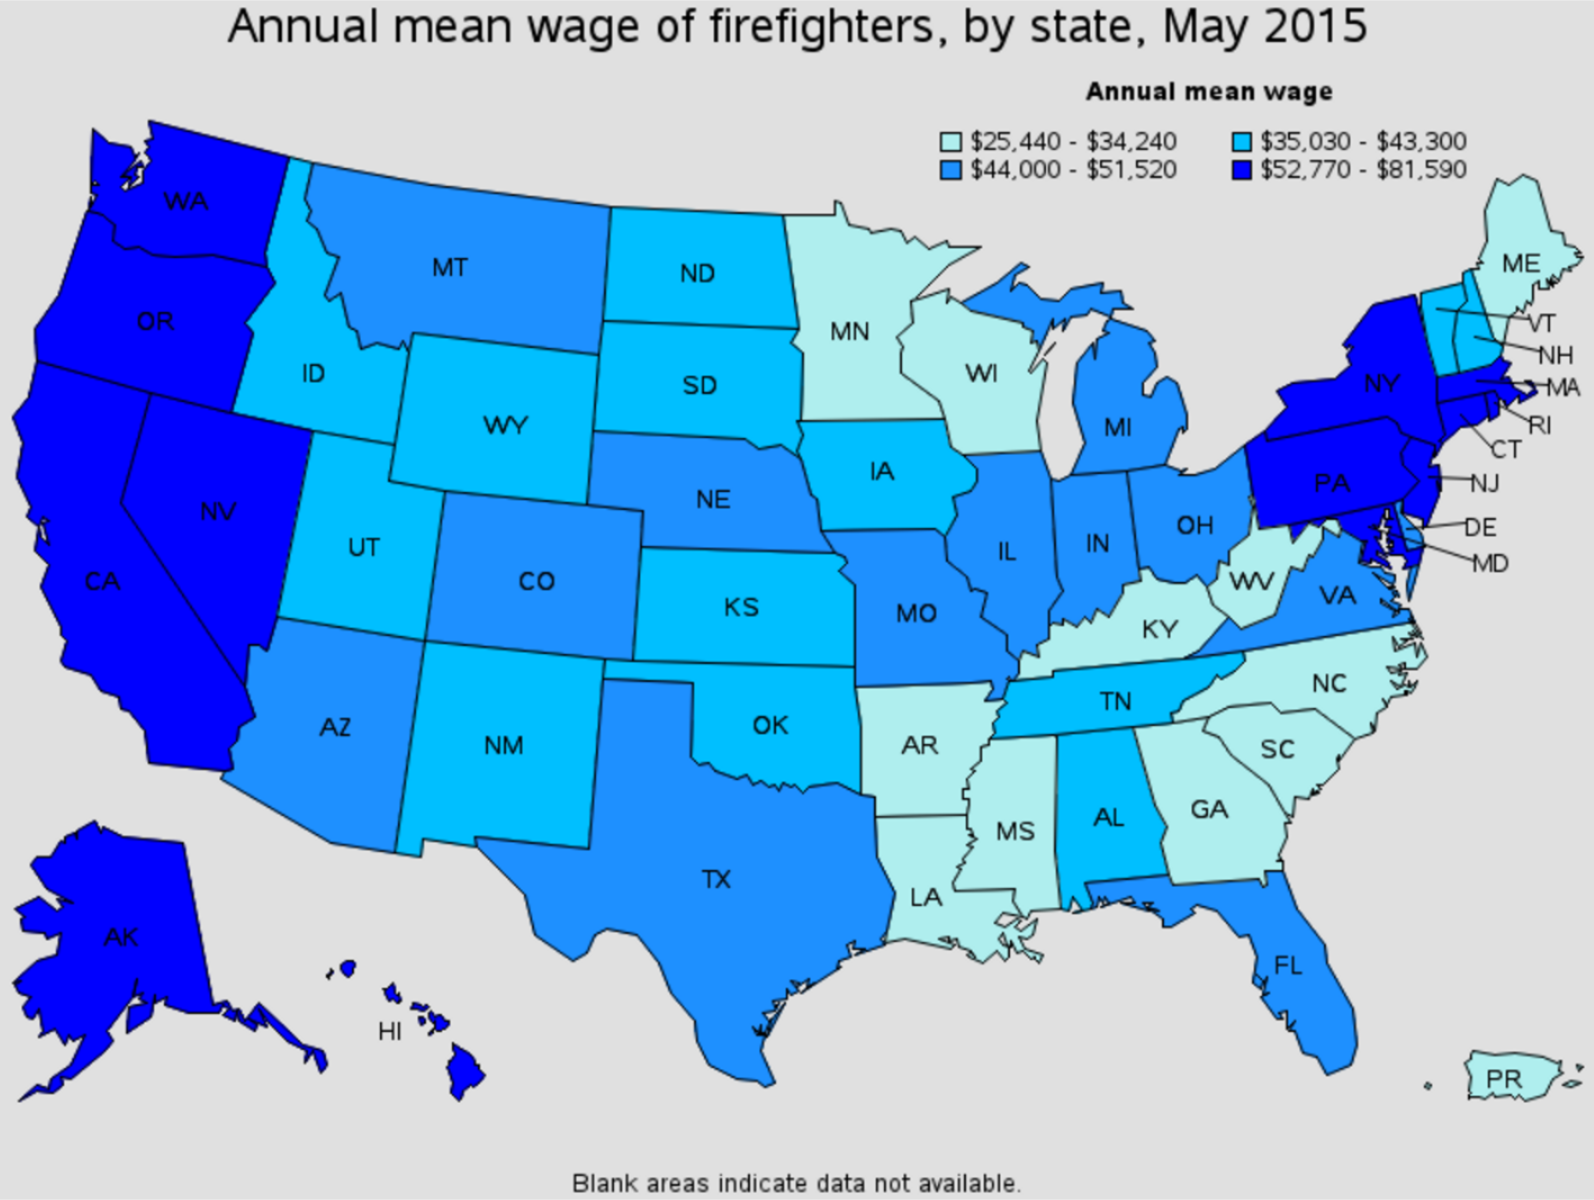 firefighter average salary by state Wyoming Iowa